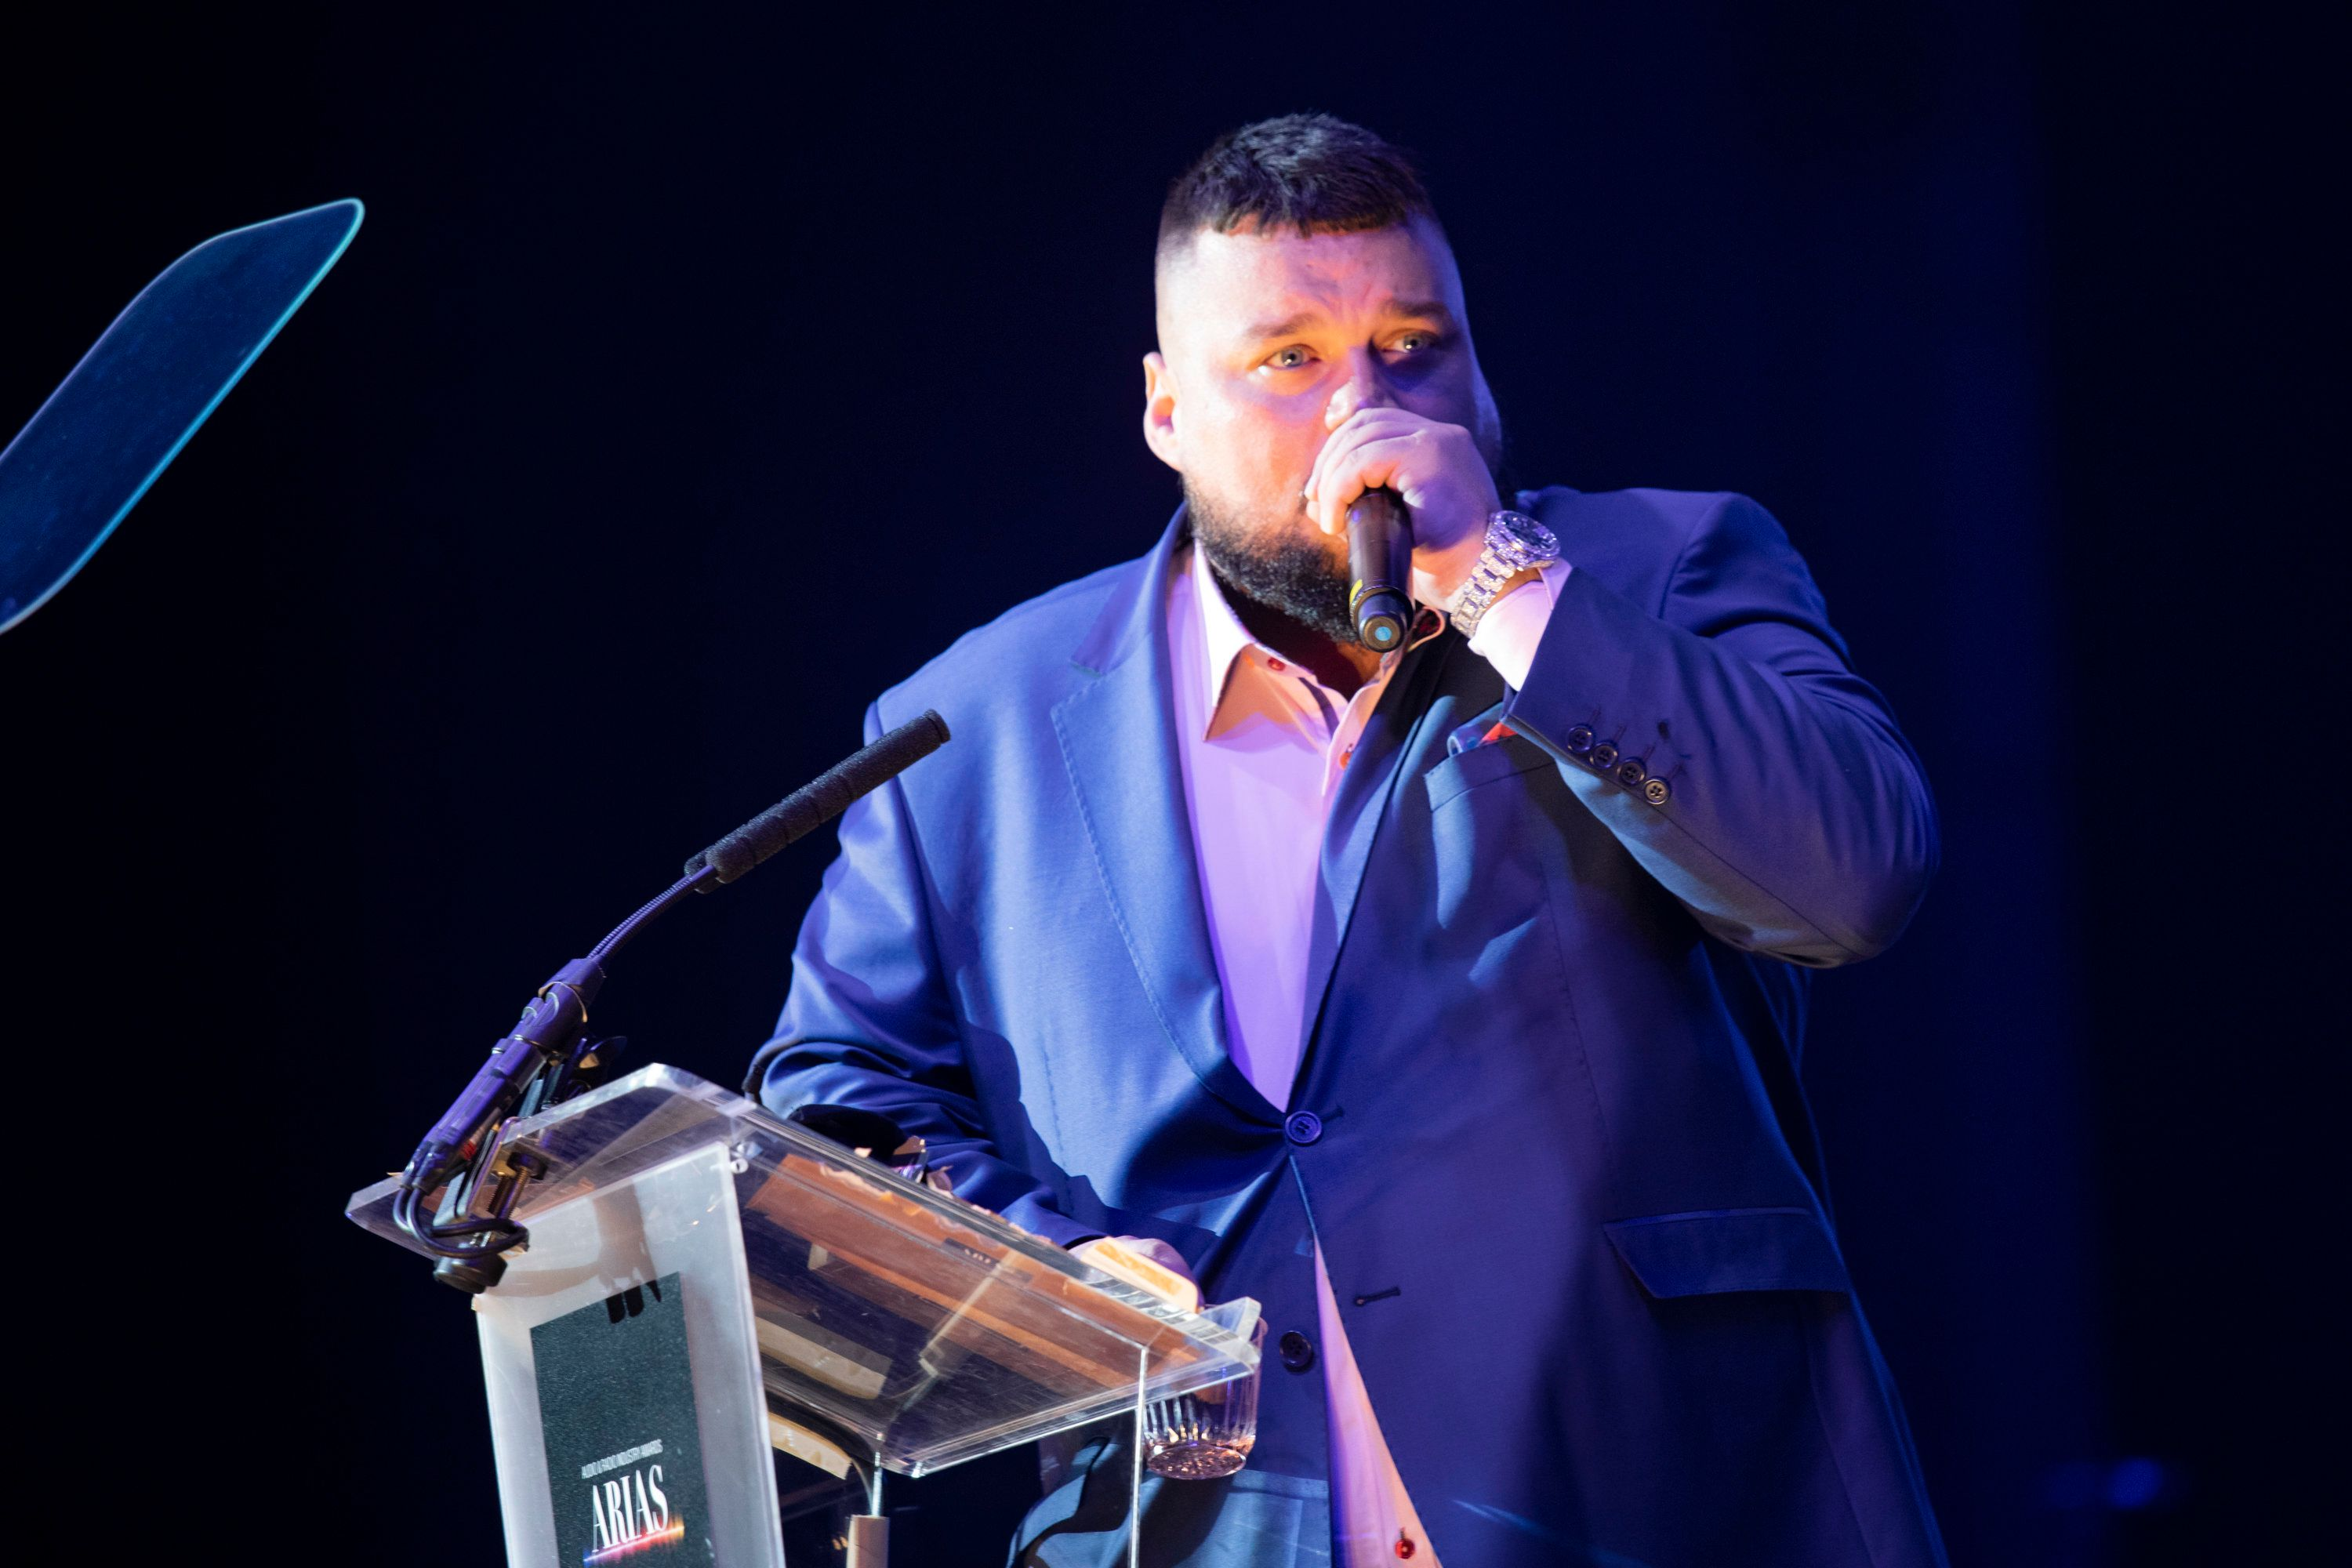 Radio 1 Host Charlie Sloth's Last 10 Shows At The BBC Scrapped, After Stage